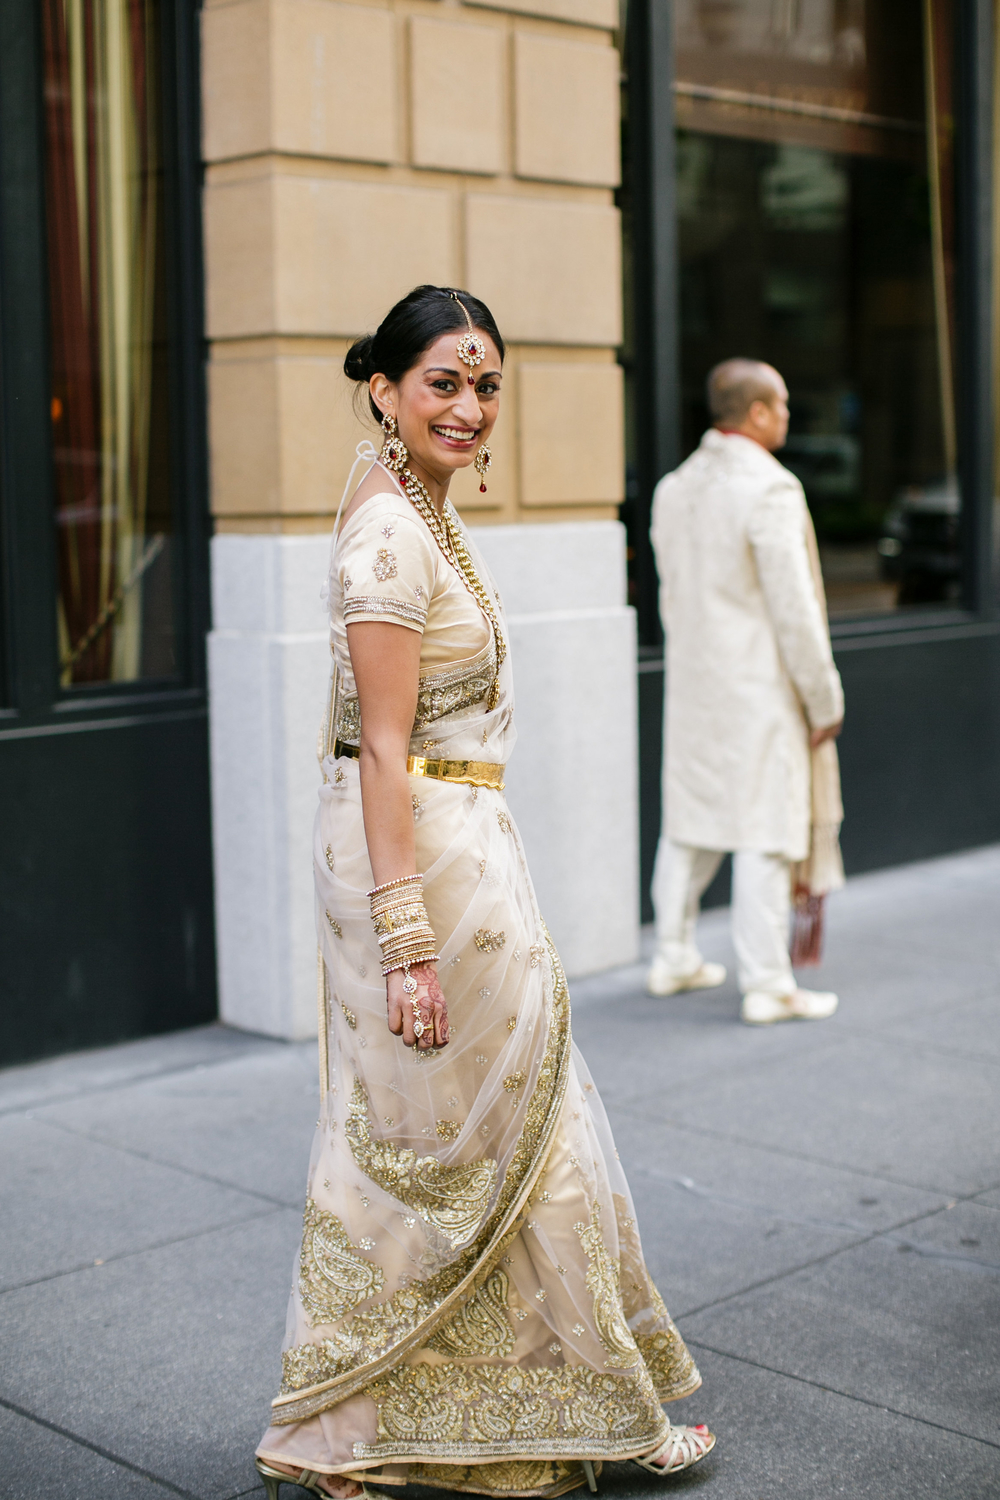 AnaisEvents_JihanCerdaPhotography_Priya-and-Jason - 020.jpg